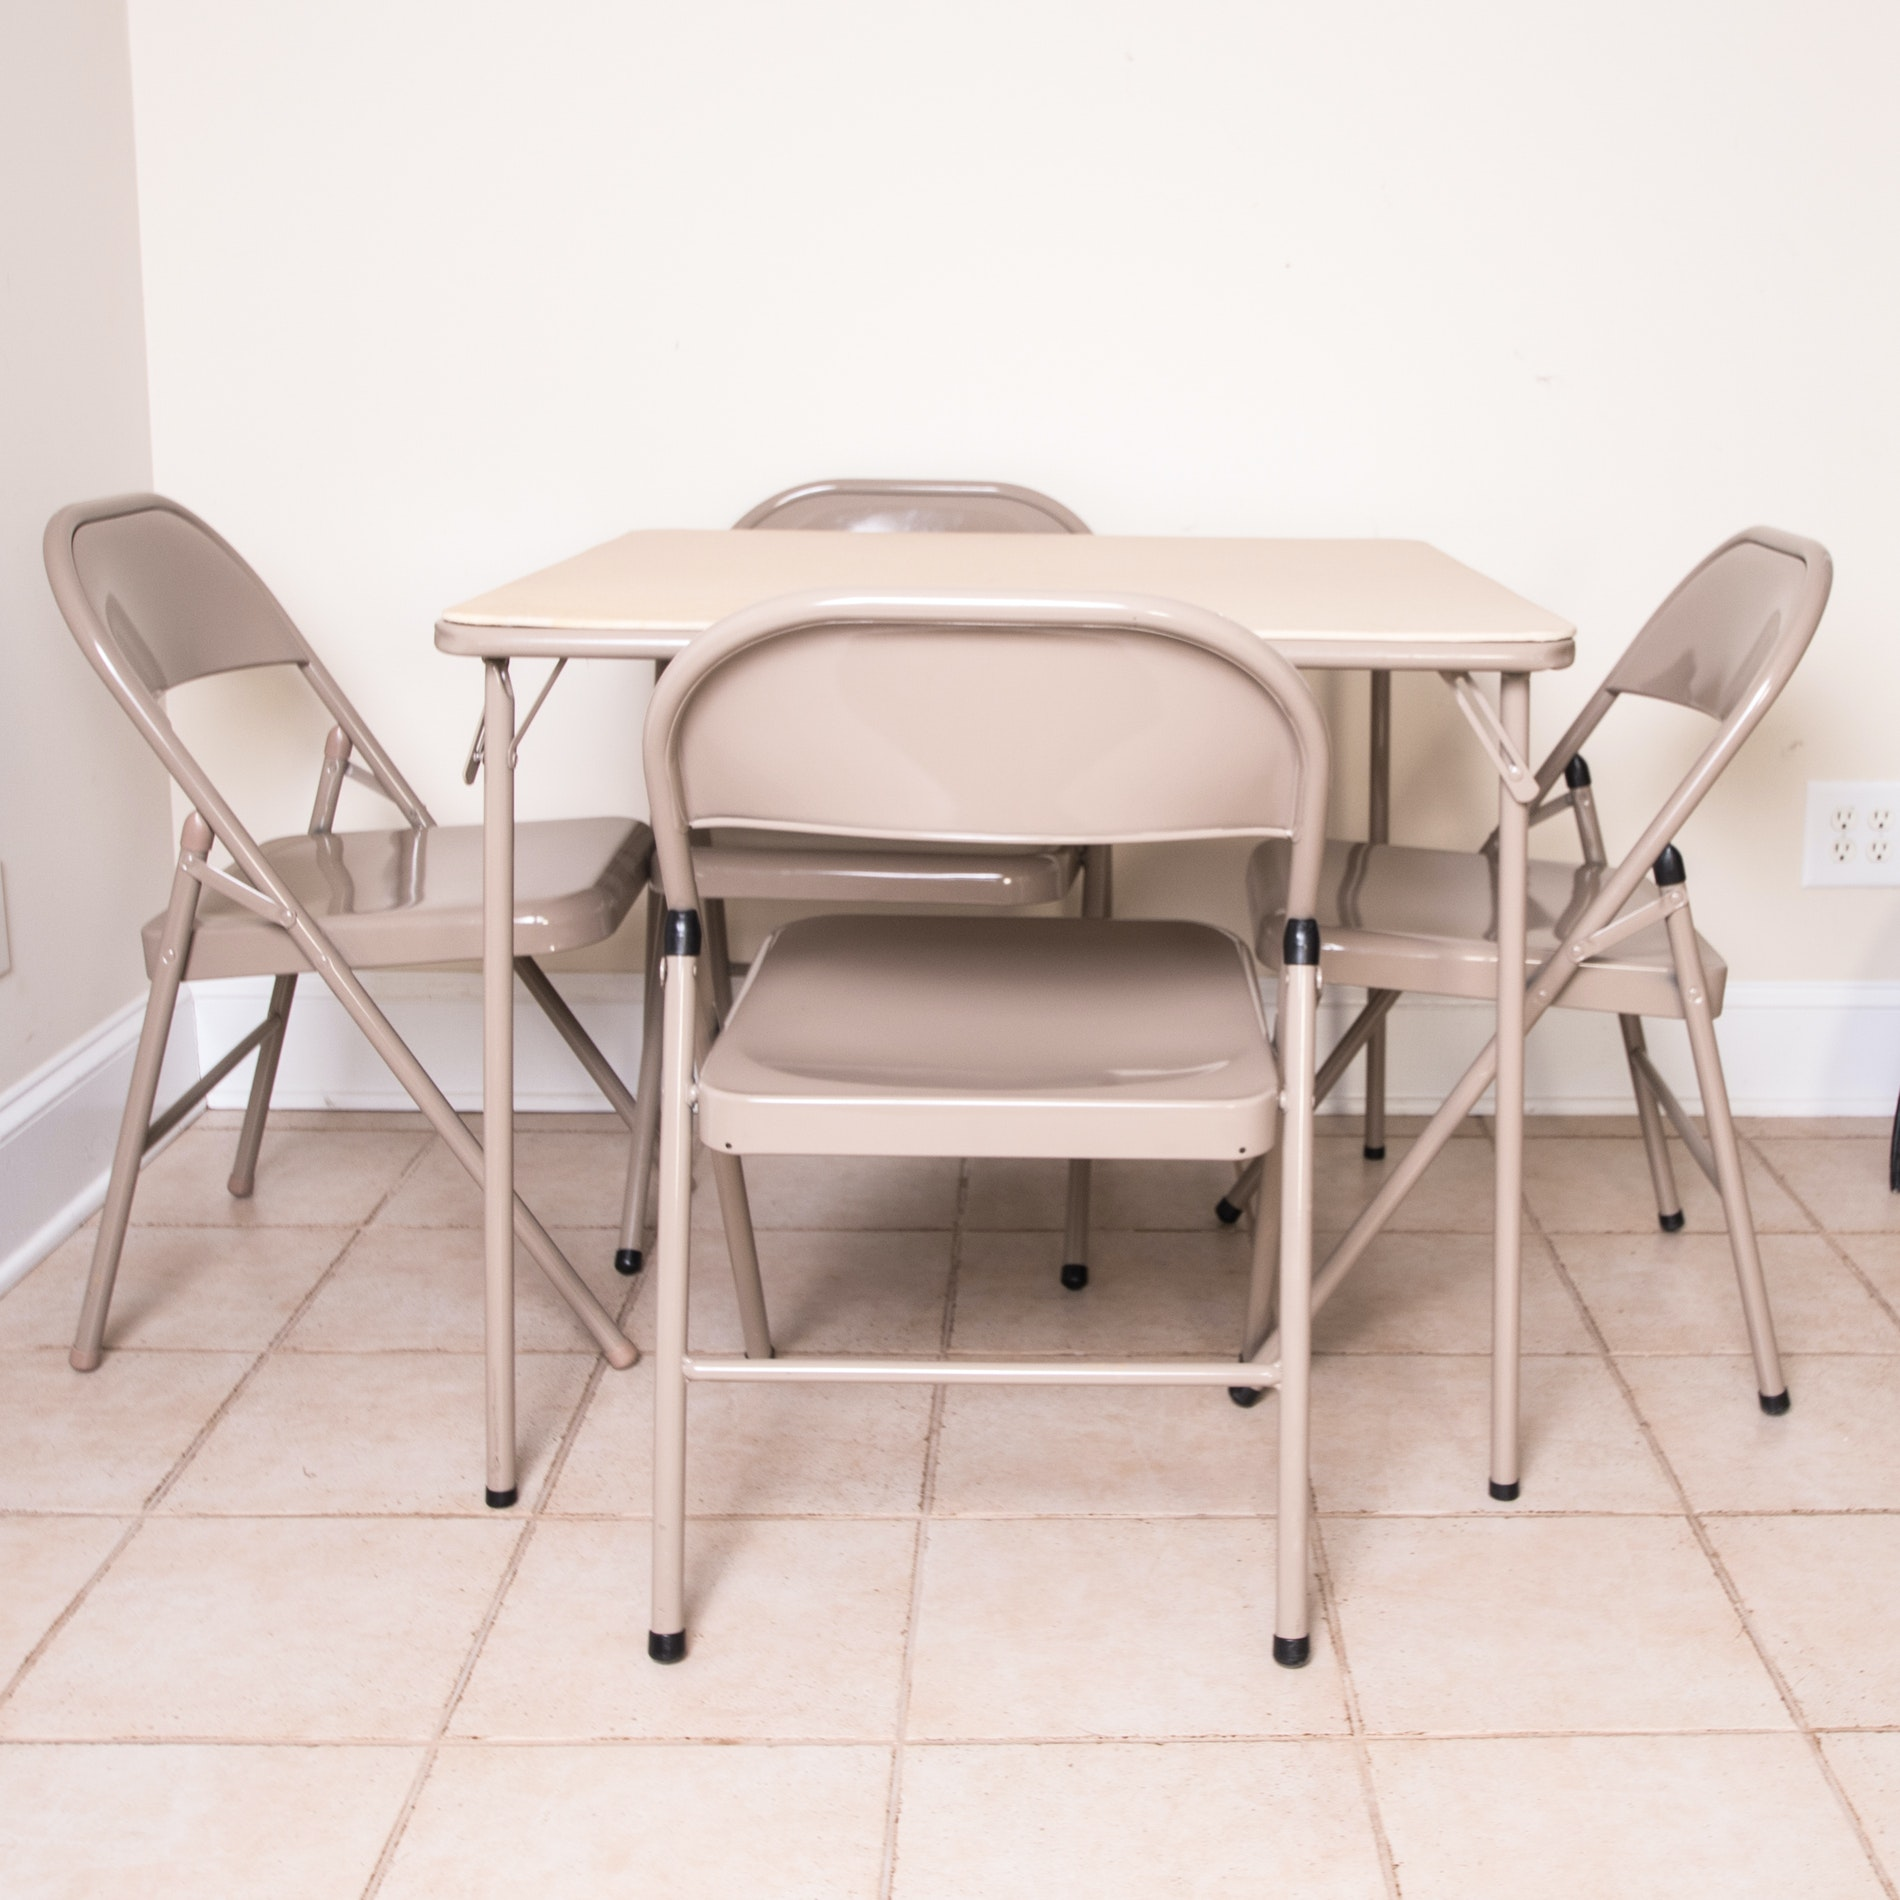 Metal Card Table and Folding Chairs